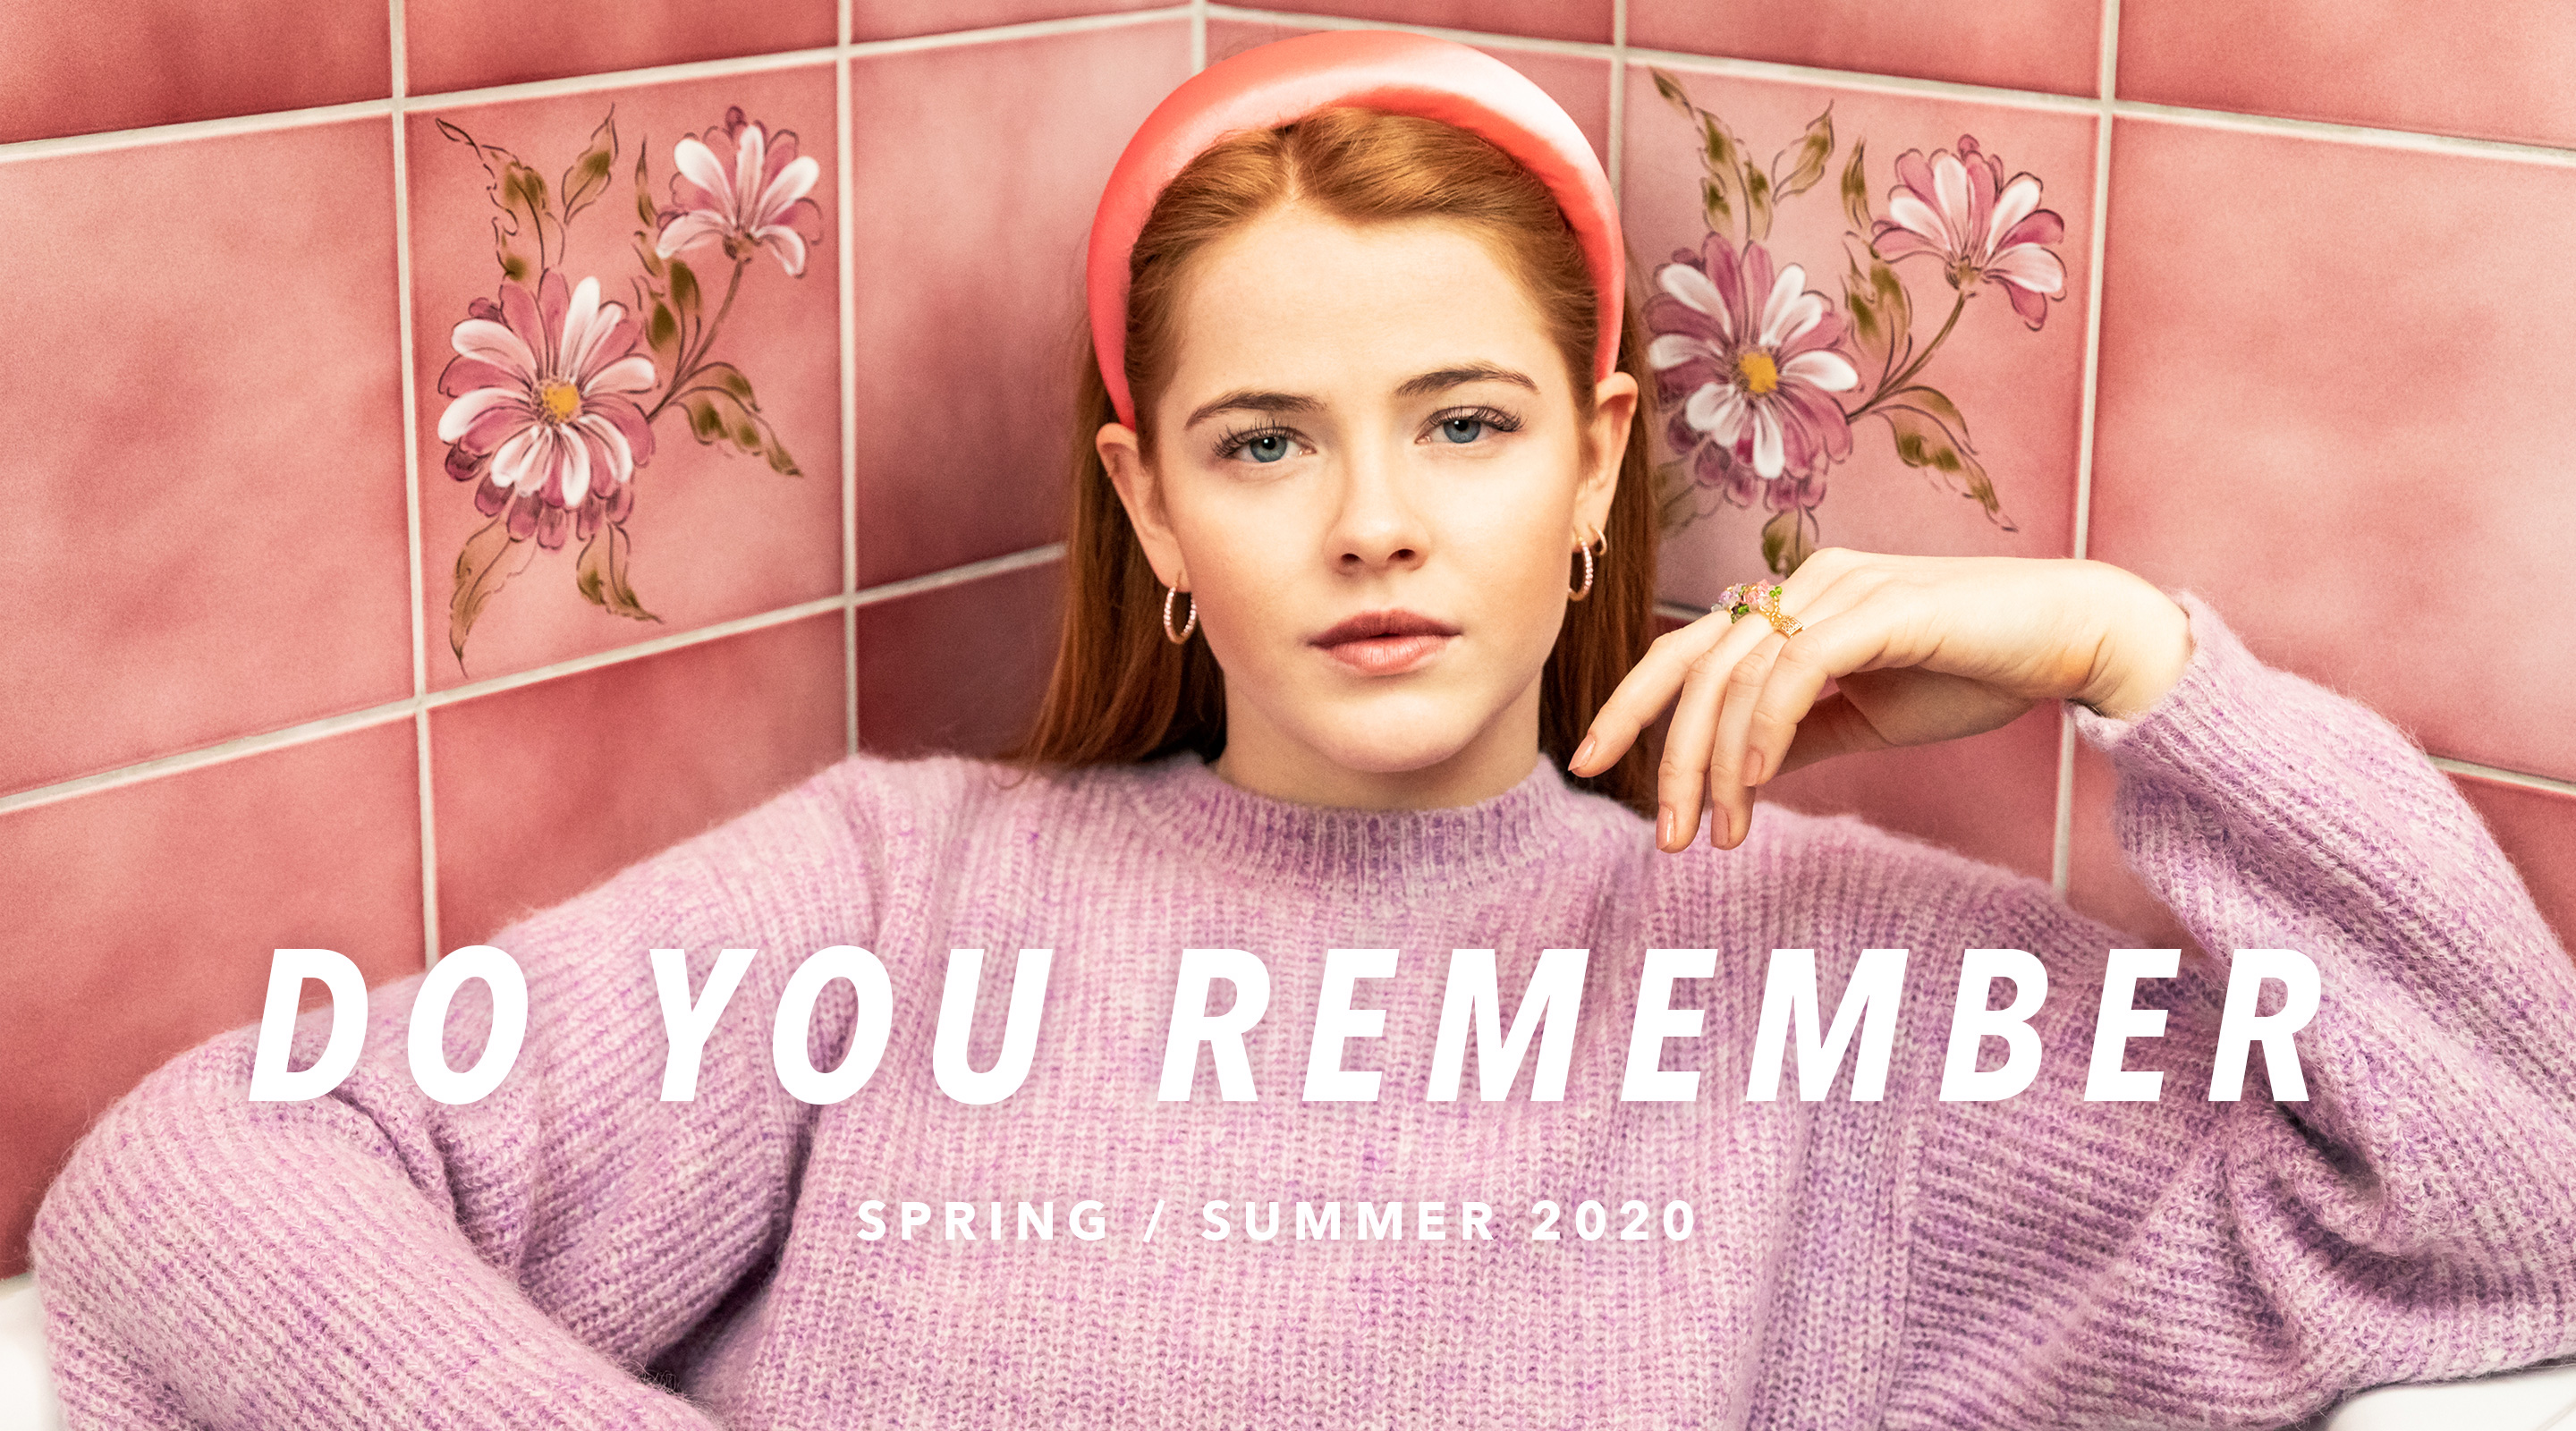 SA_do_you_remeber_spring_summer_2020_banner_2880x1600px